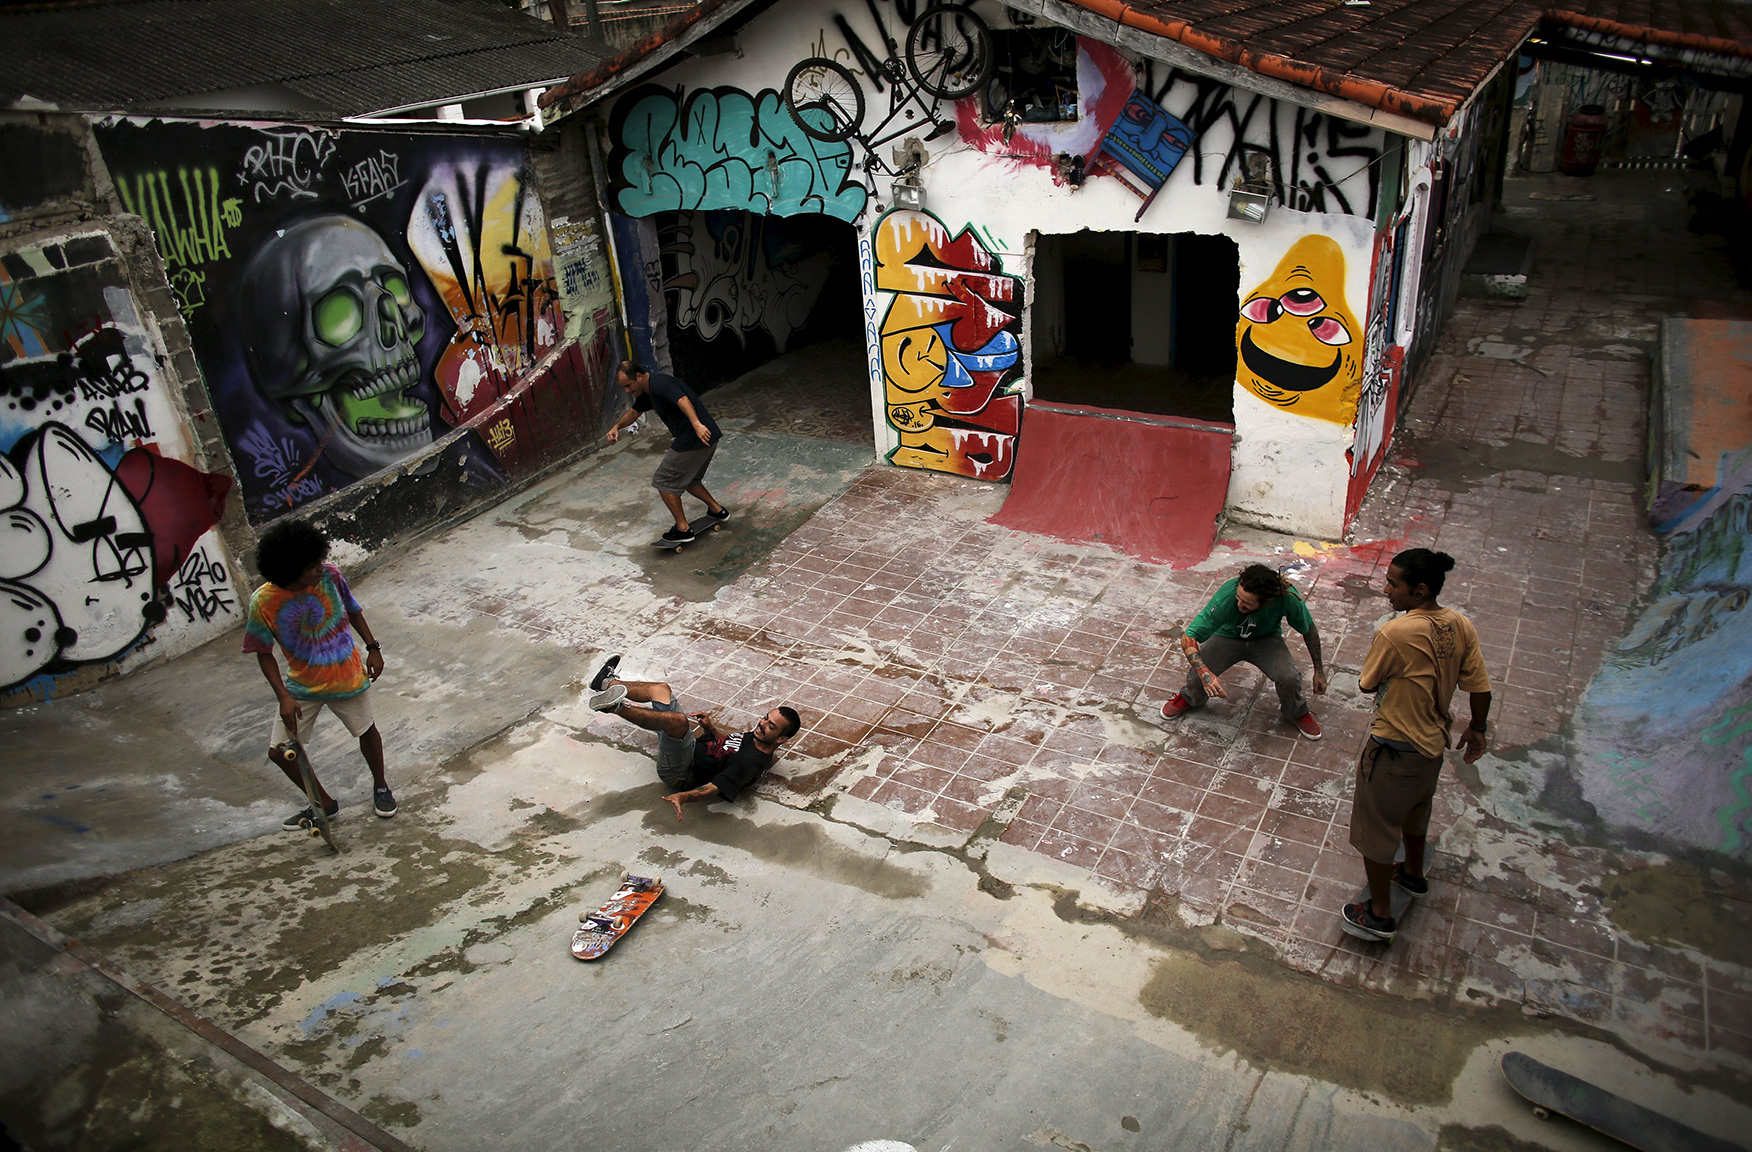 Skateboarders ride their boards in skate park house in Itanhaem